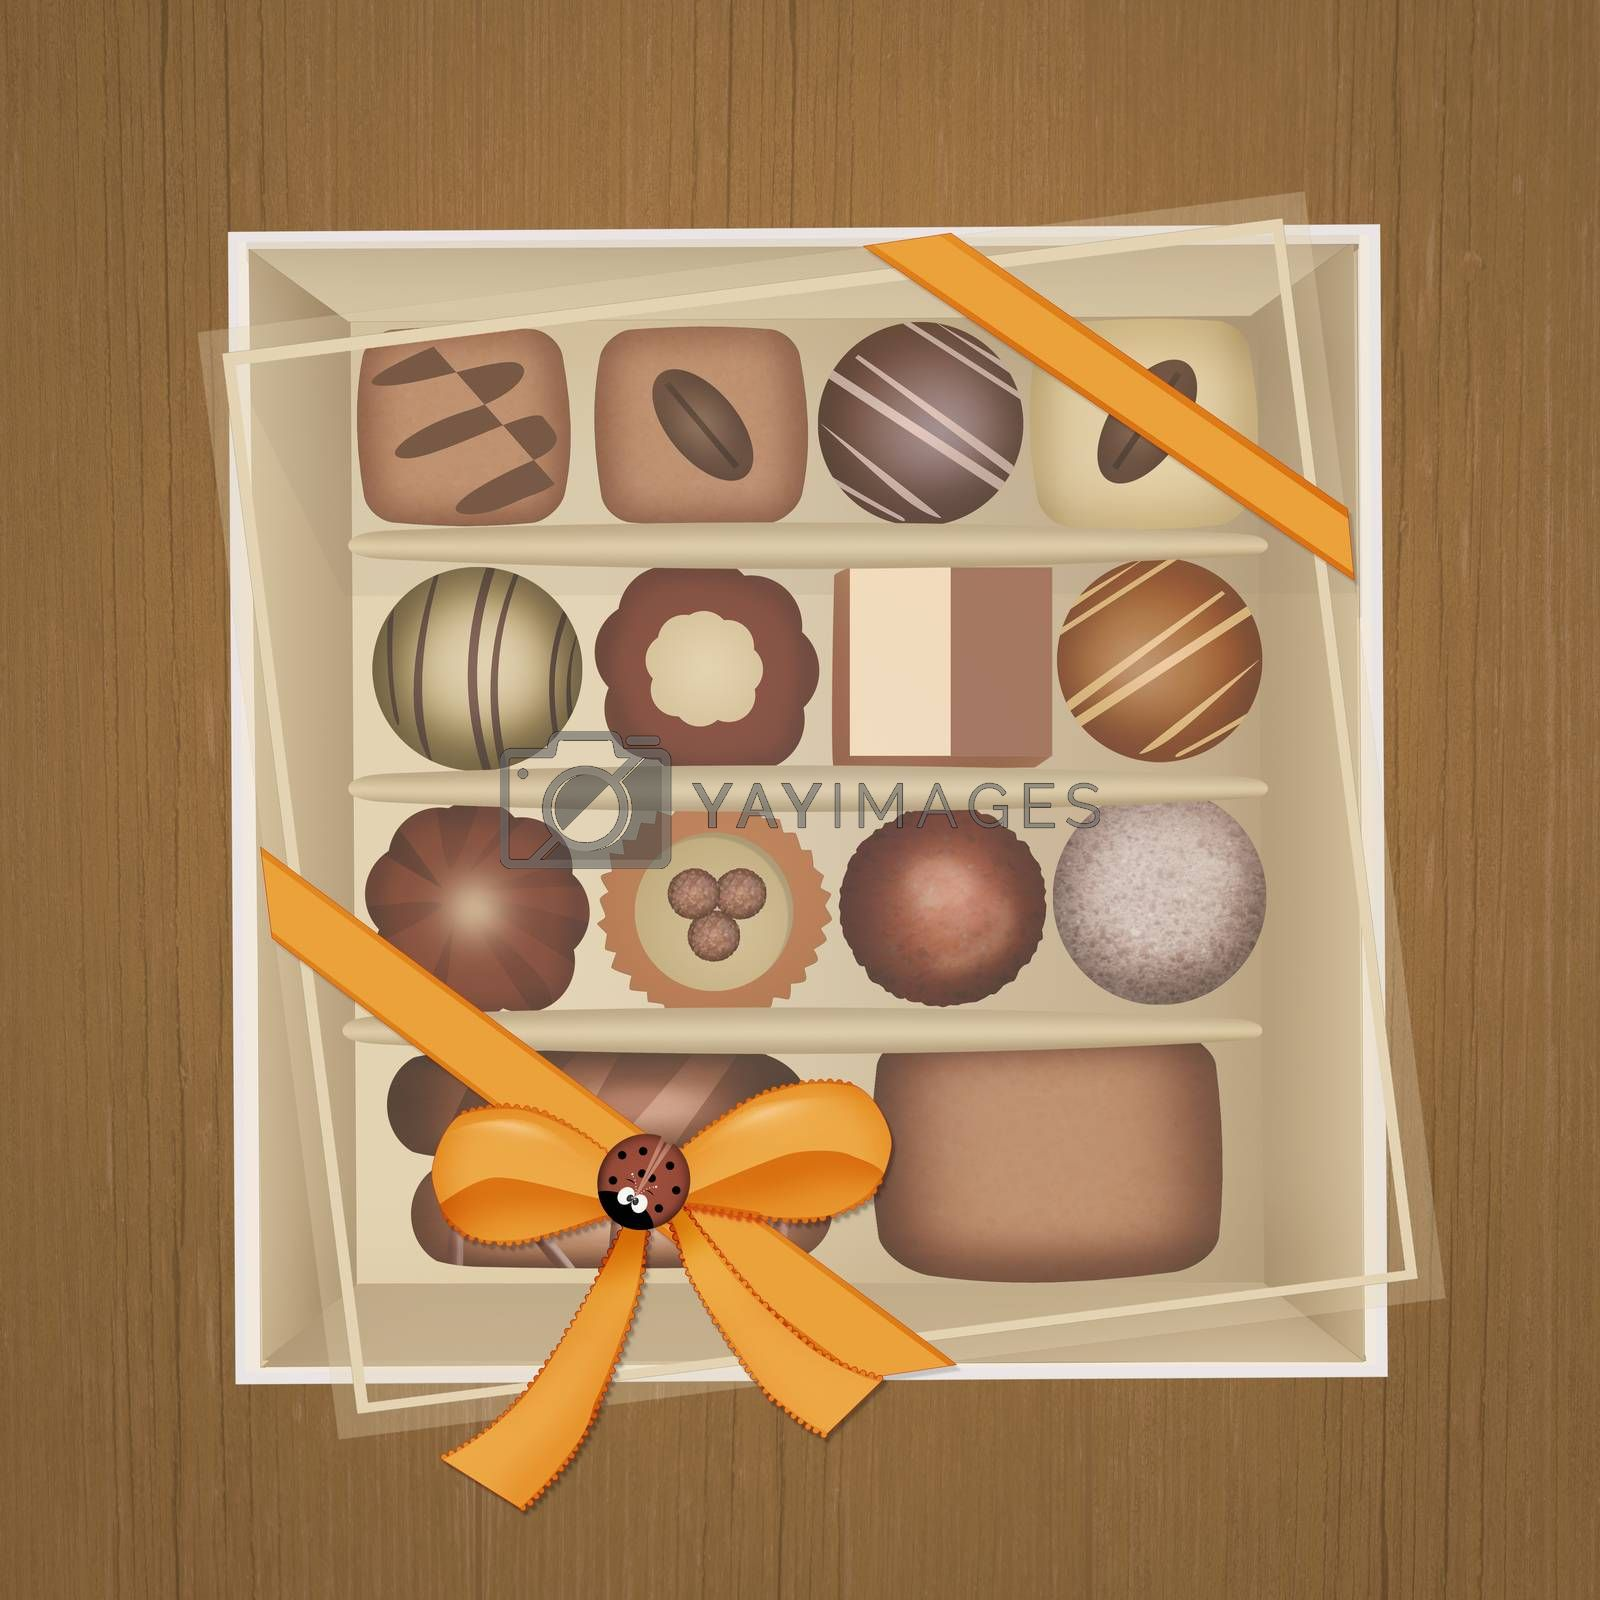 chocolates in the box by adrenalina